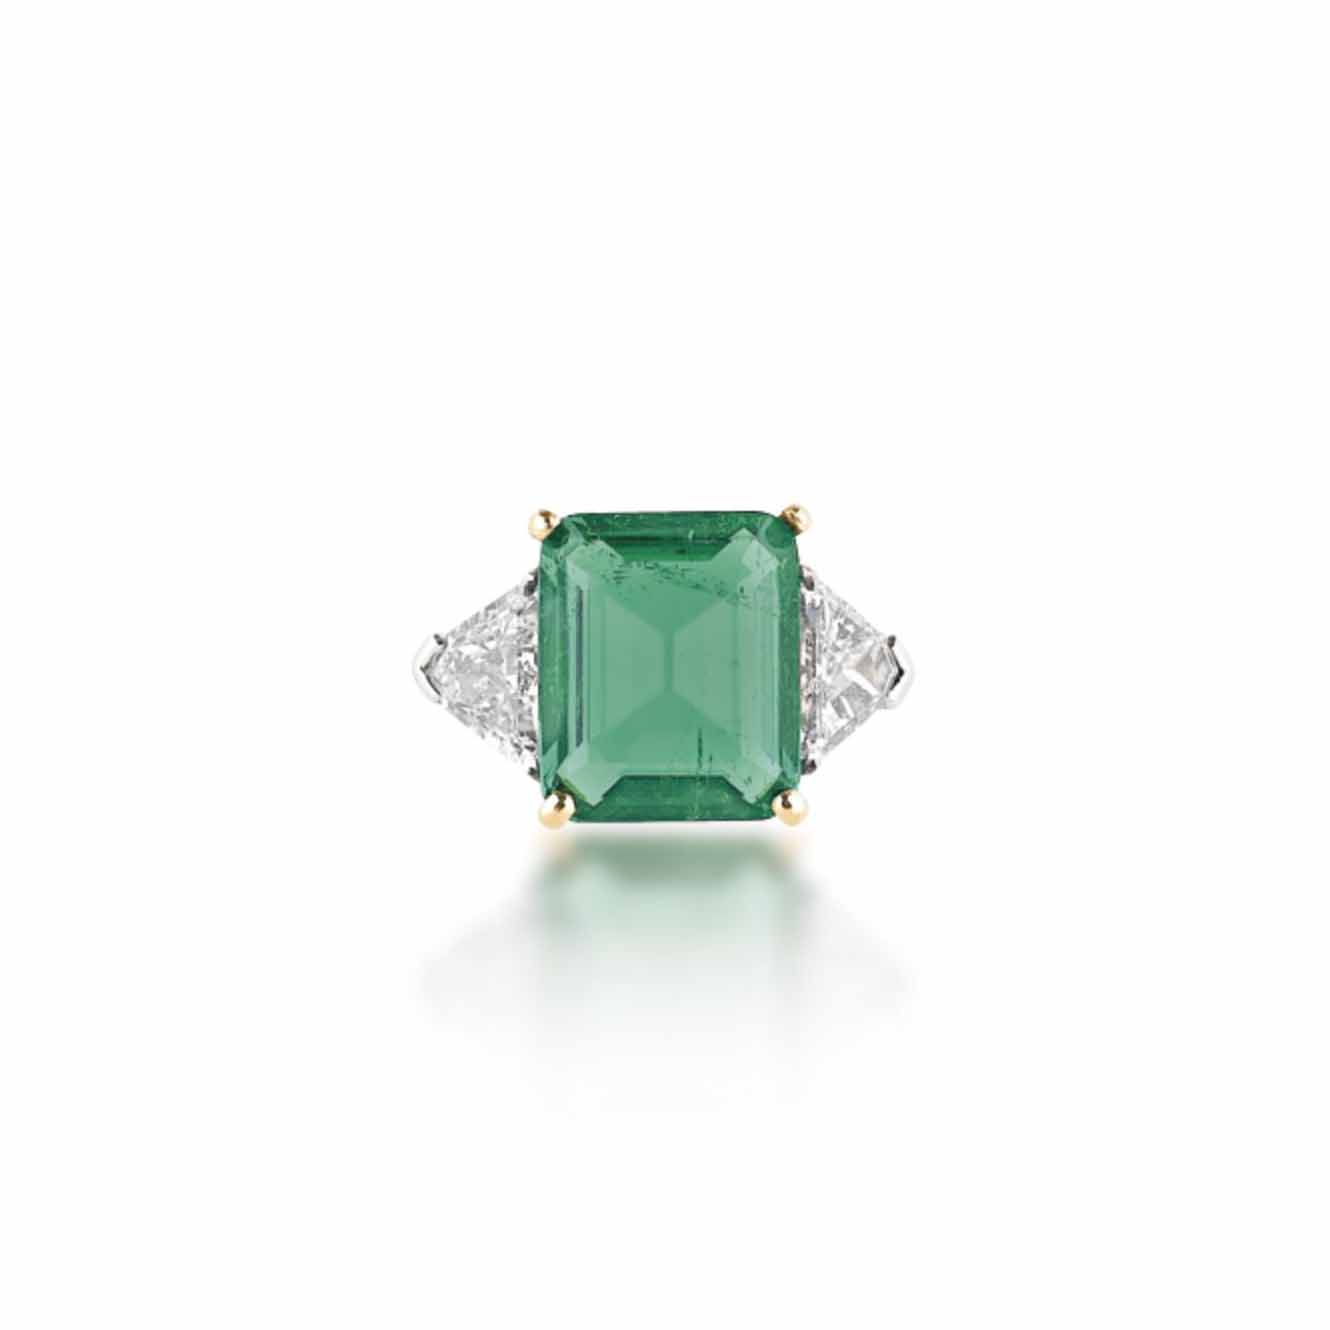 AN EMERALD AND DIAMOND RING, BY CUSI